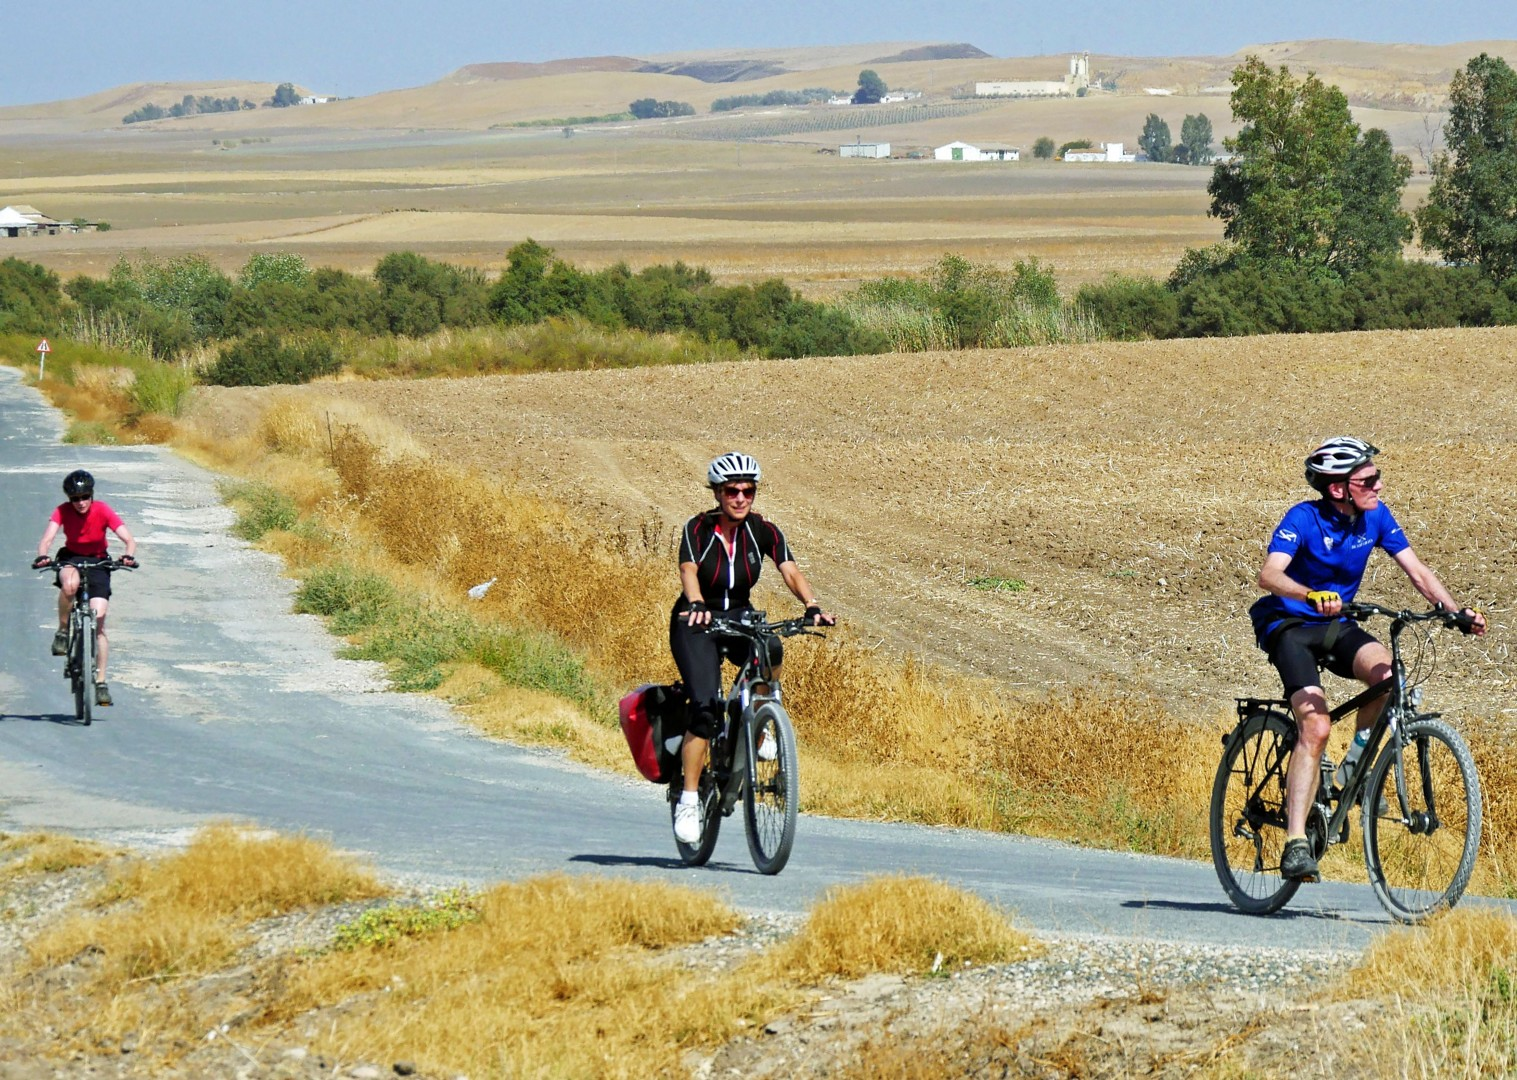 spain-granada-to-seville-guided-leisure-cycling-holiday.jpg - Spain - Granada to Seville - Guided Leisure Cycling Holiday - Leisure Cycling